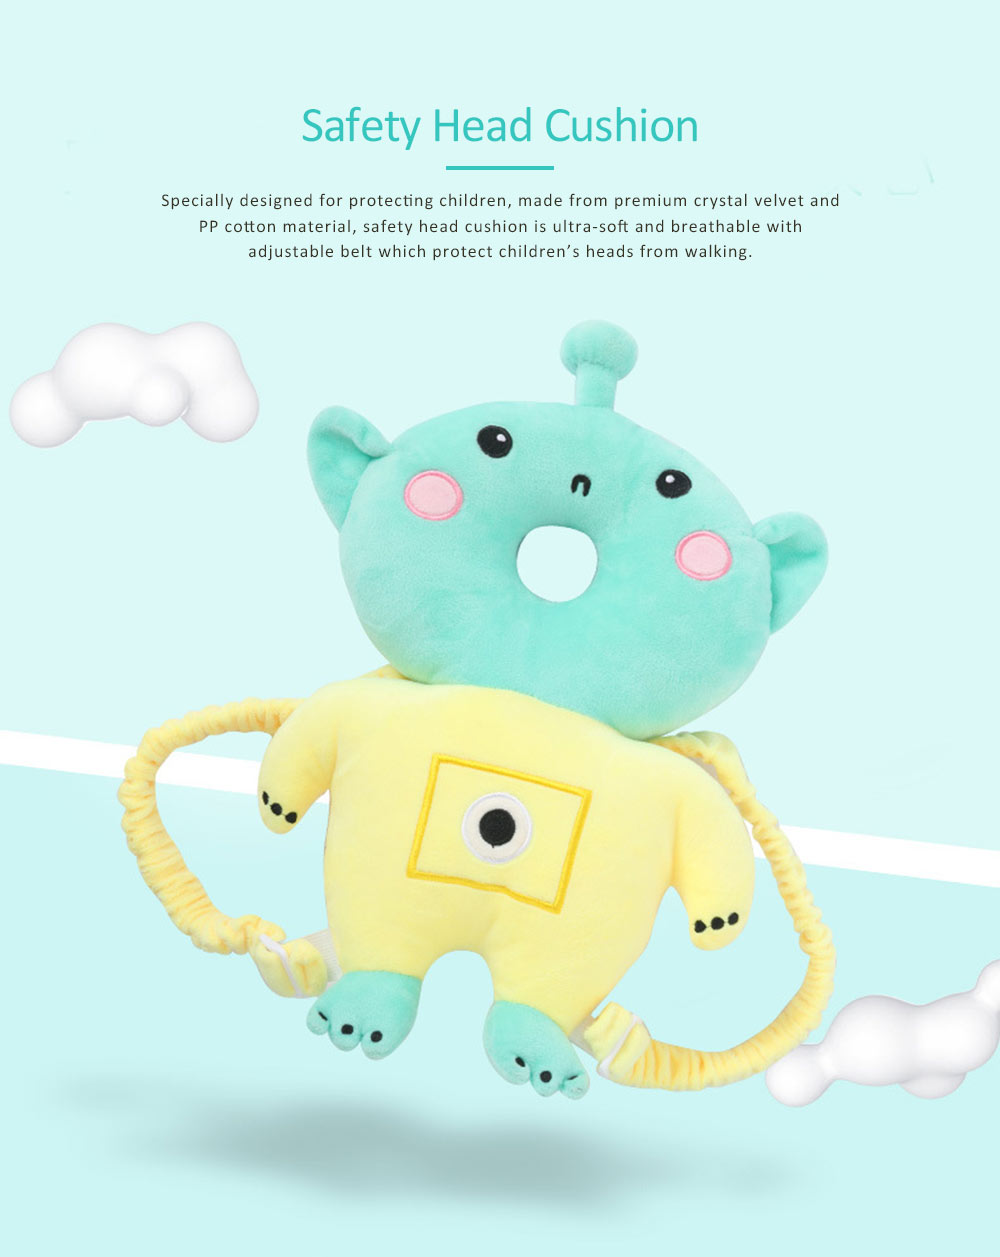 Head Pillow for Children, Safety Head Cushion with Adjustable Shoulder Strap, Suitable for Toddlers Age 5 Months-2 Ages 0